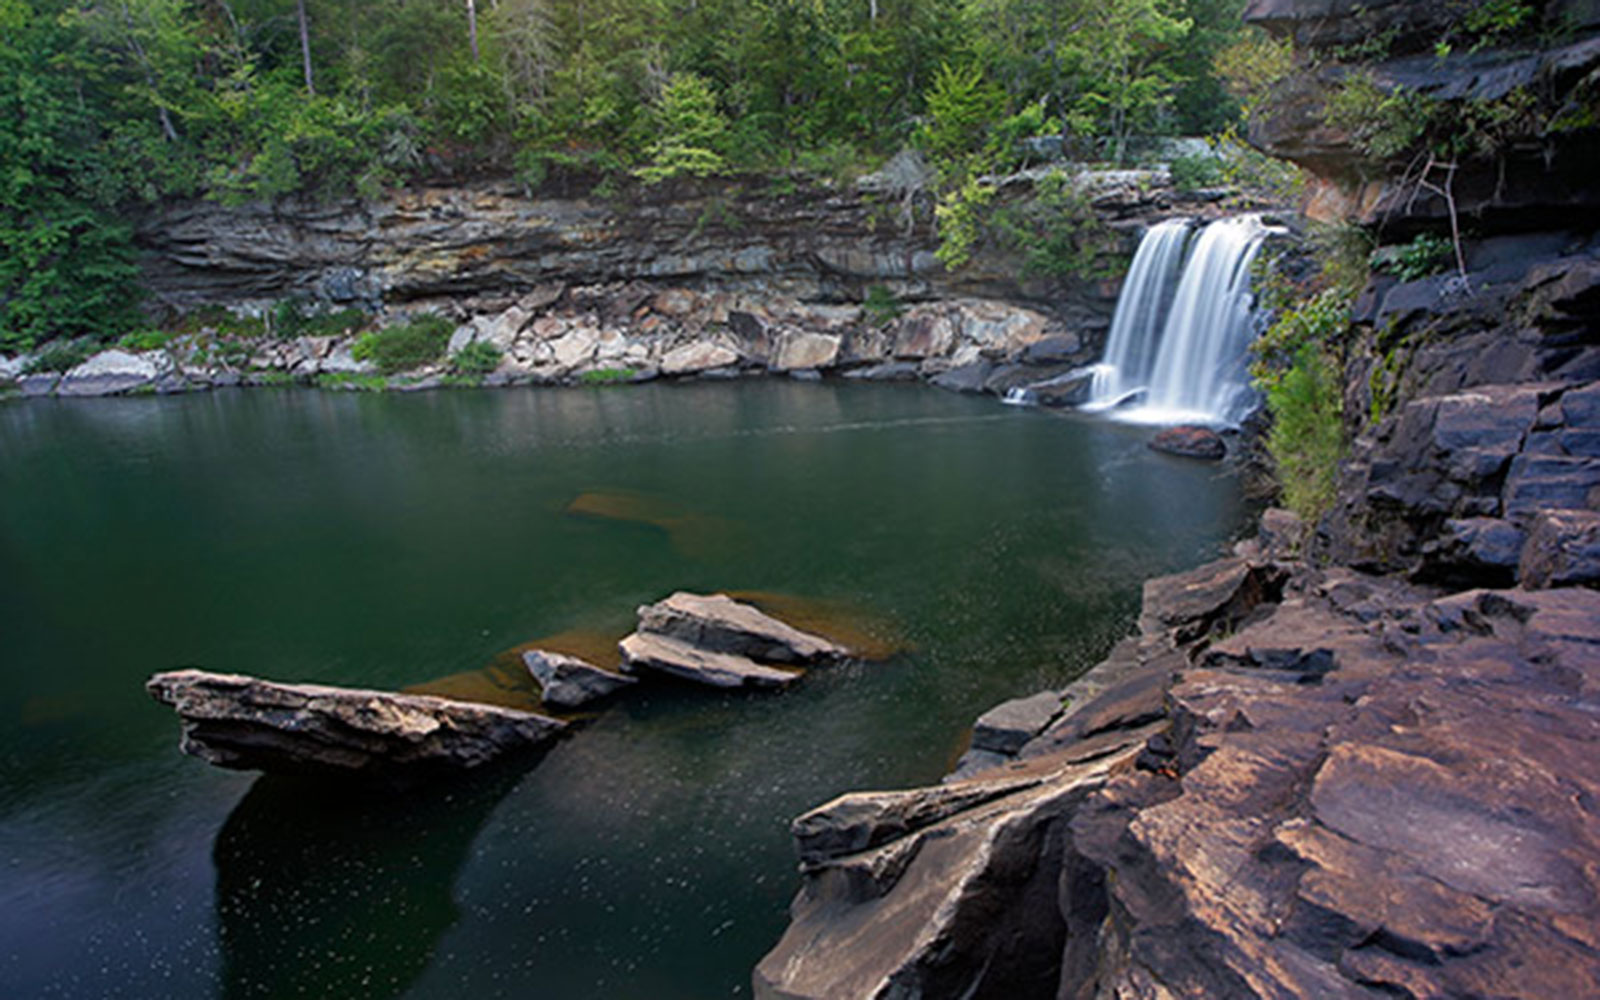 Little River Canyon, Alabama